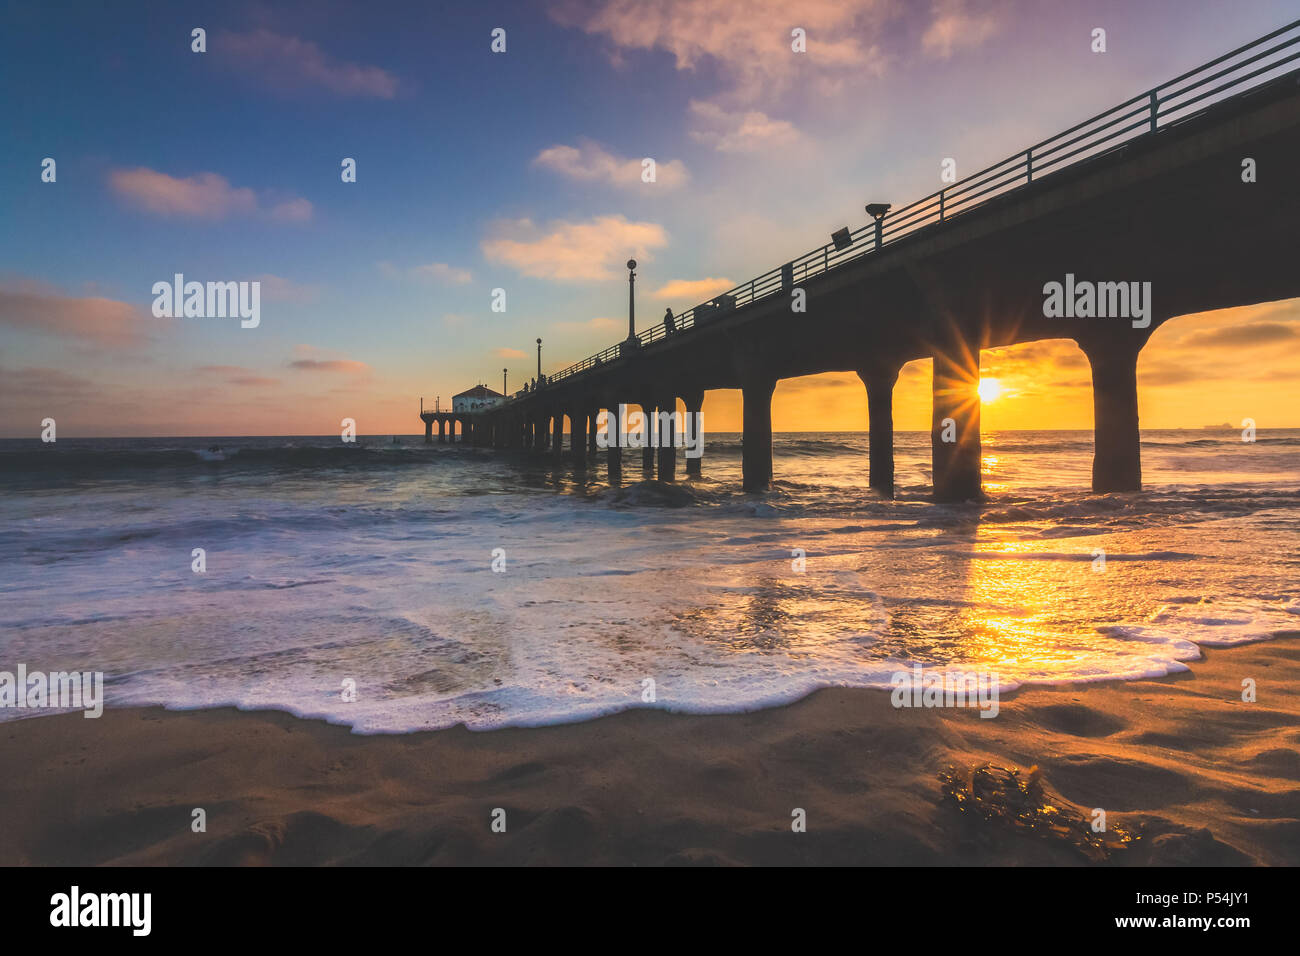 Colorful sky and clouds over Manhattan Beach Pier at sunset with smooth waves washing onto the beach, Manhattan Beach, California - Stock Image